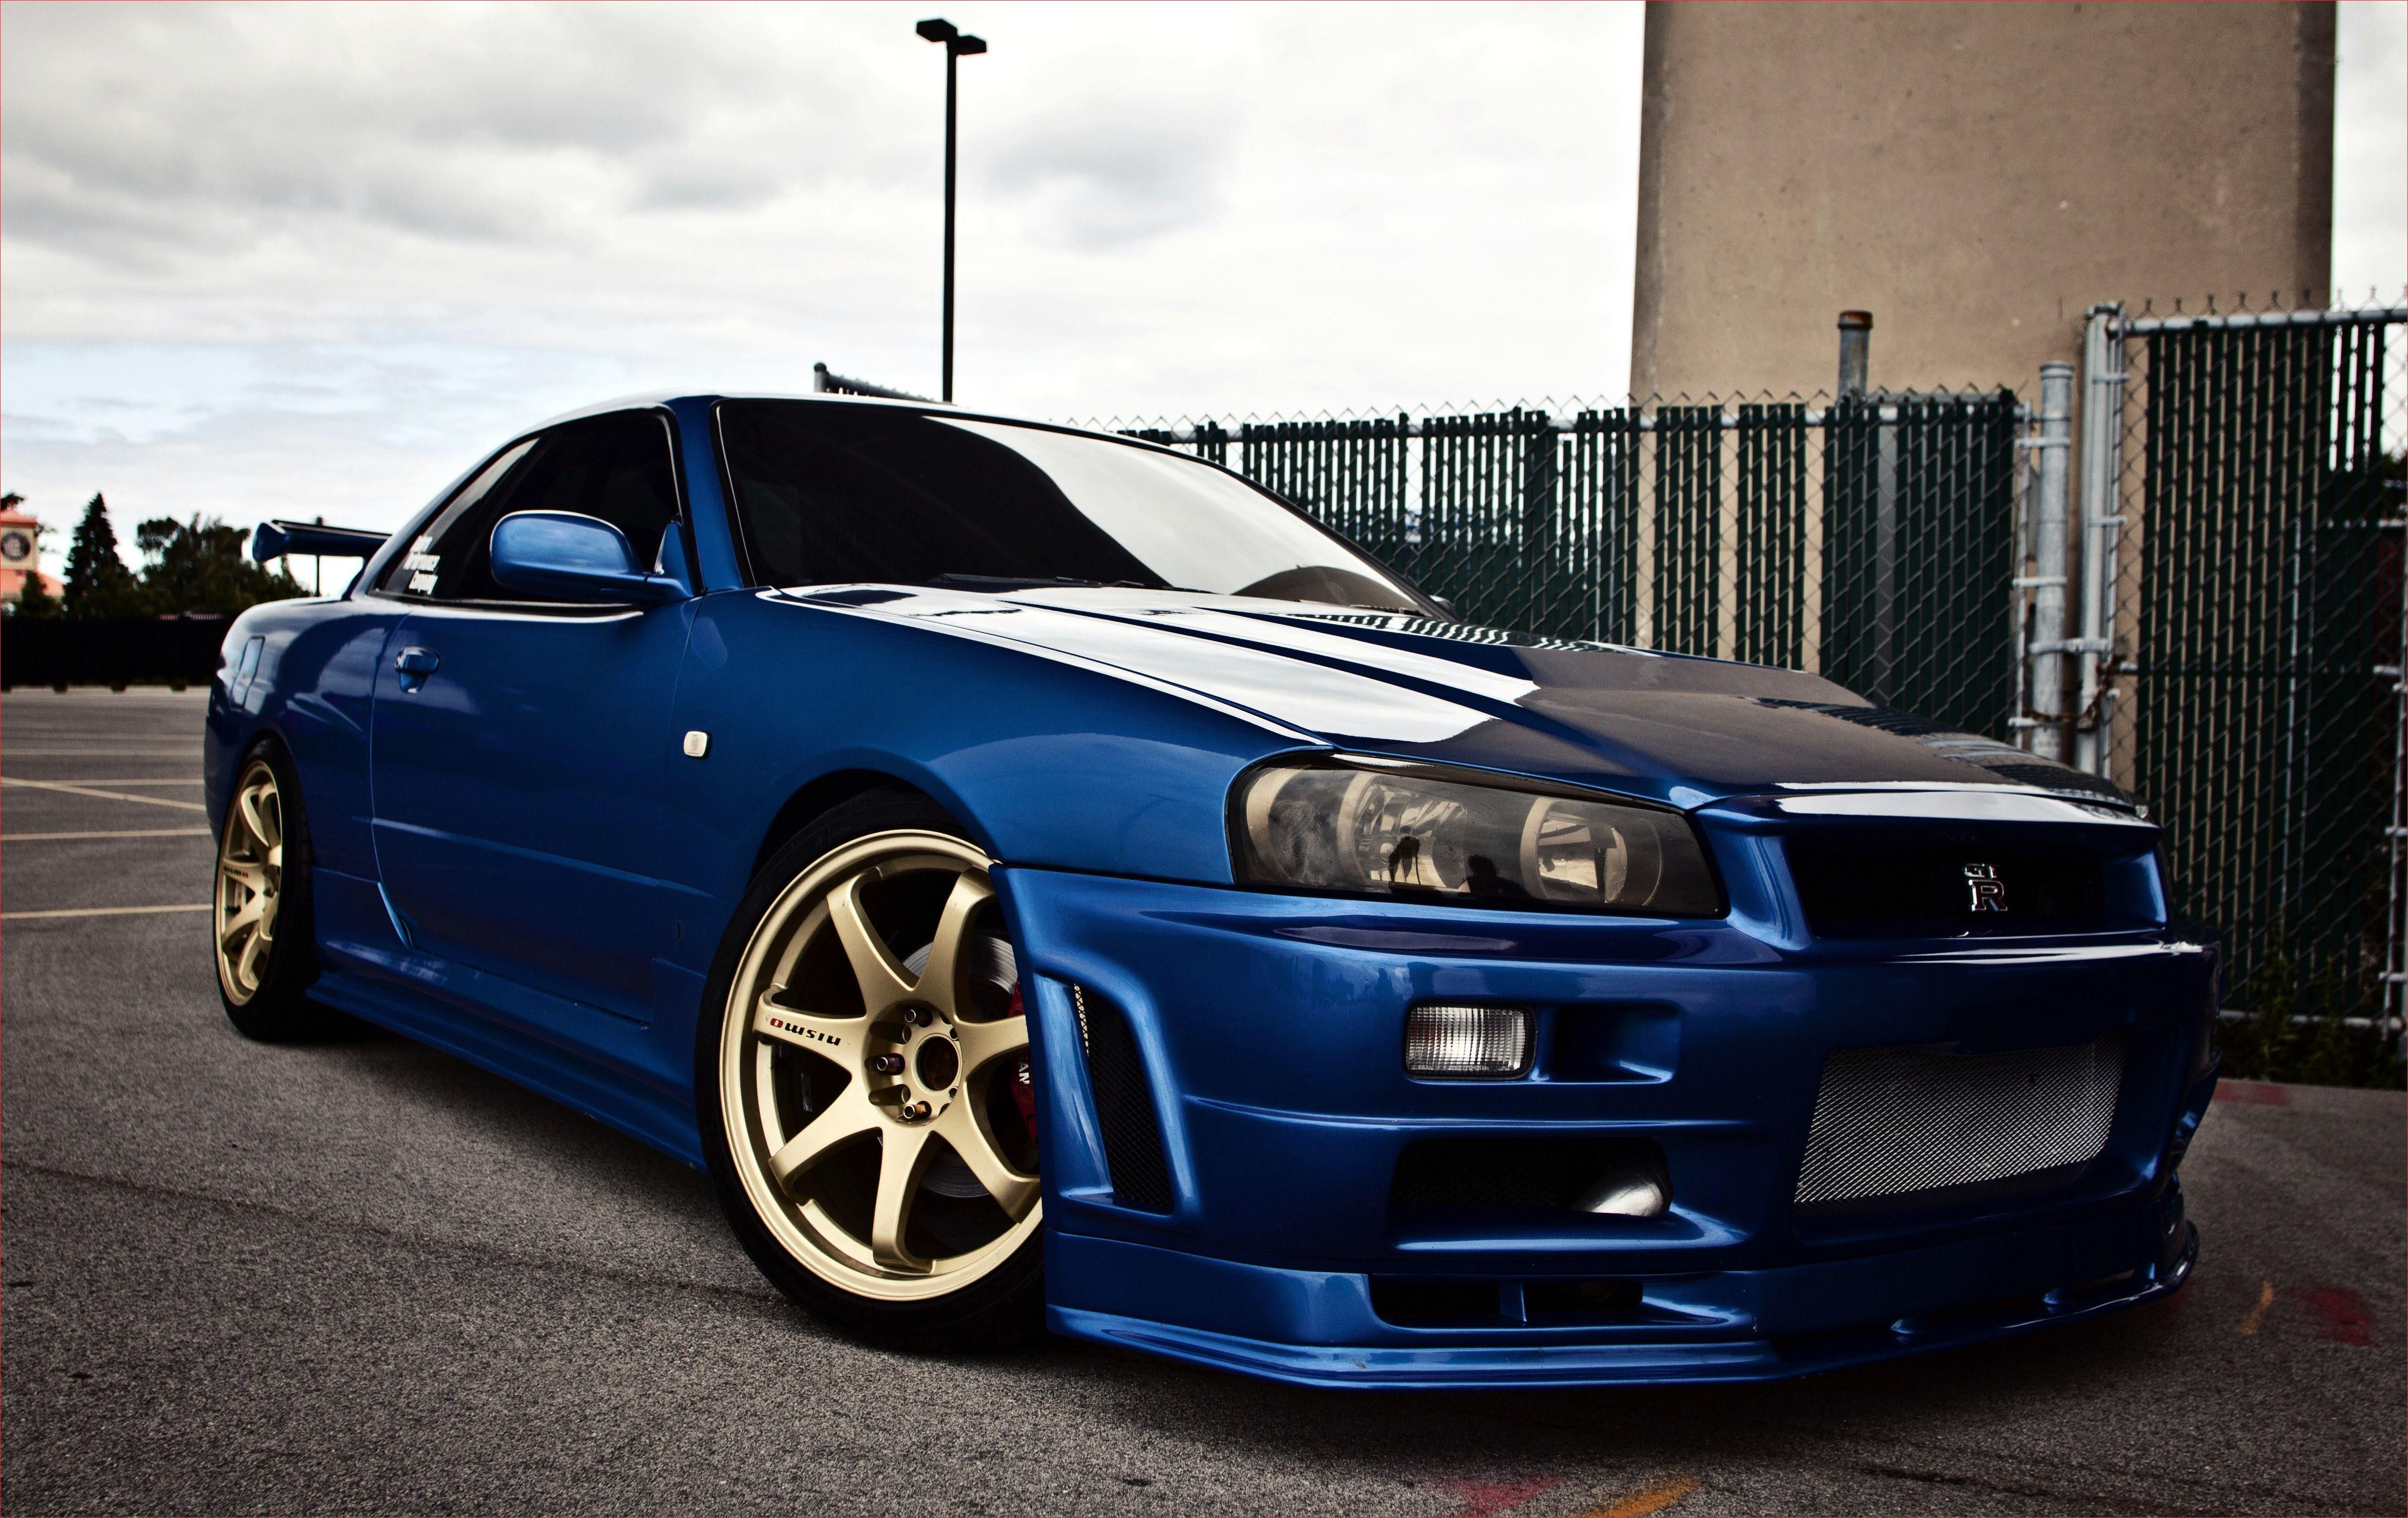 4752x2995 Nissan Skyline Gtr R34 Wallpapers With Images Nissan